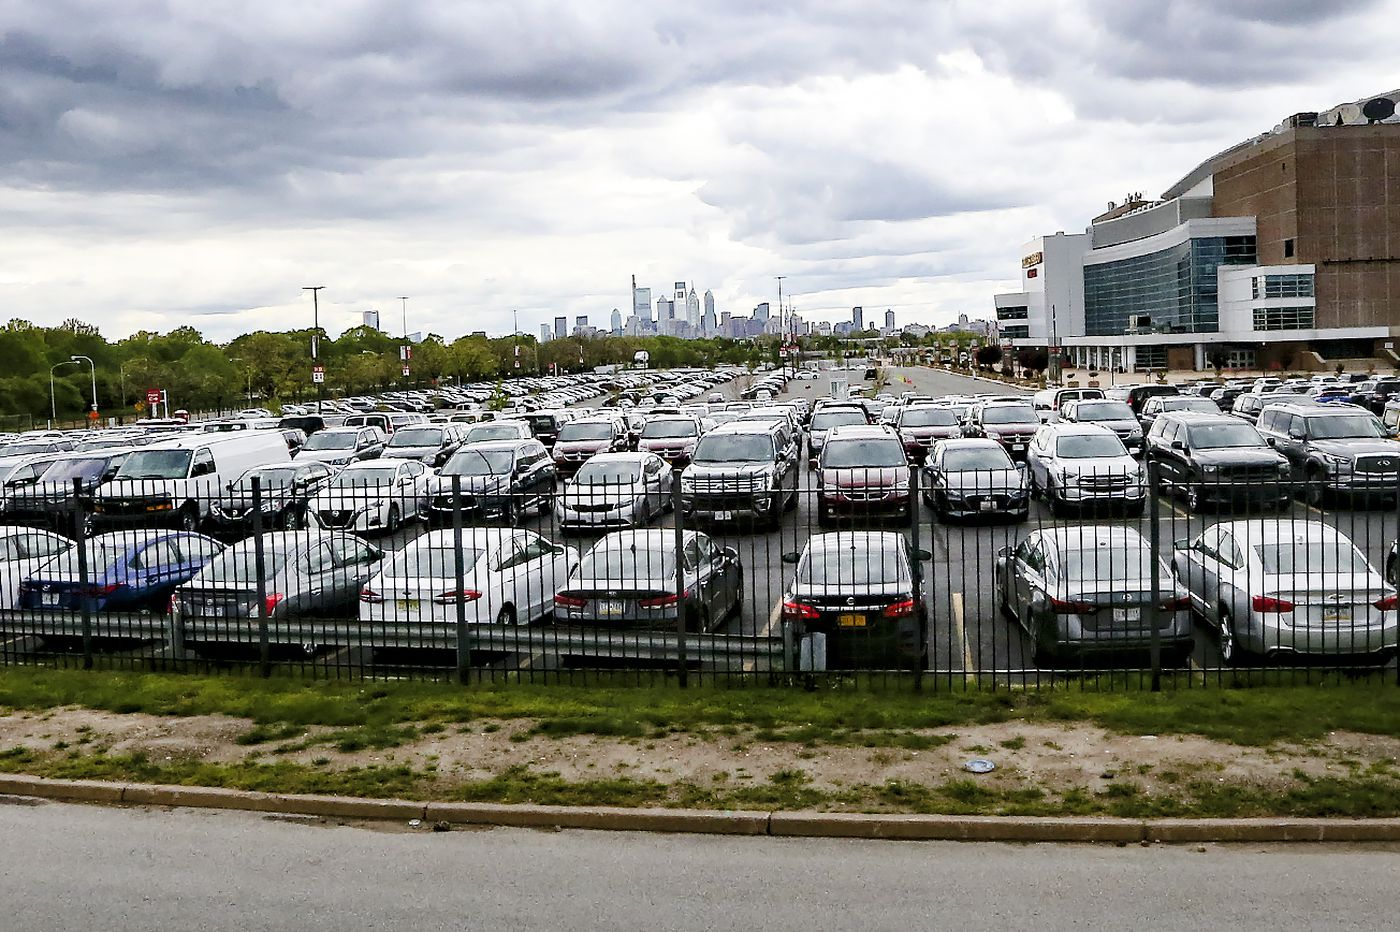 Why are so many cars parked at the stadium complex in South Philly right now?